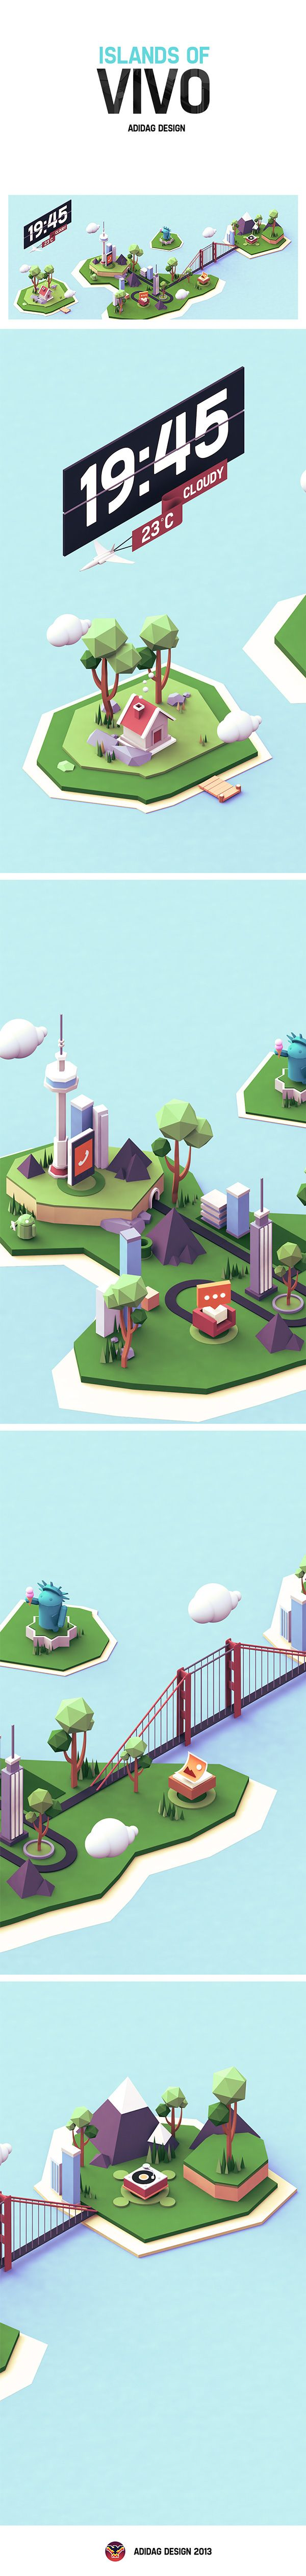 Islands of VIVO on Behance